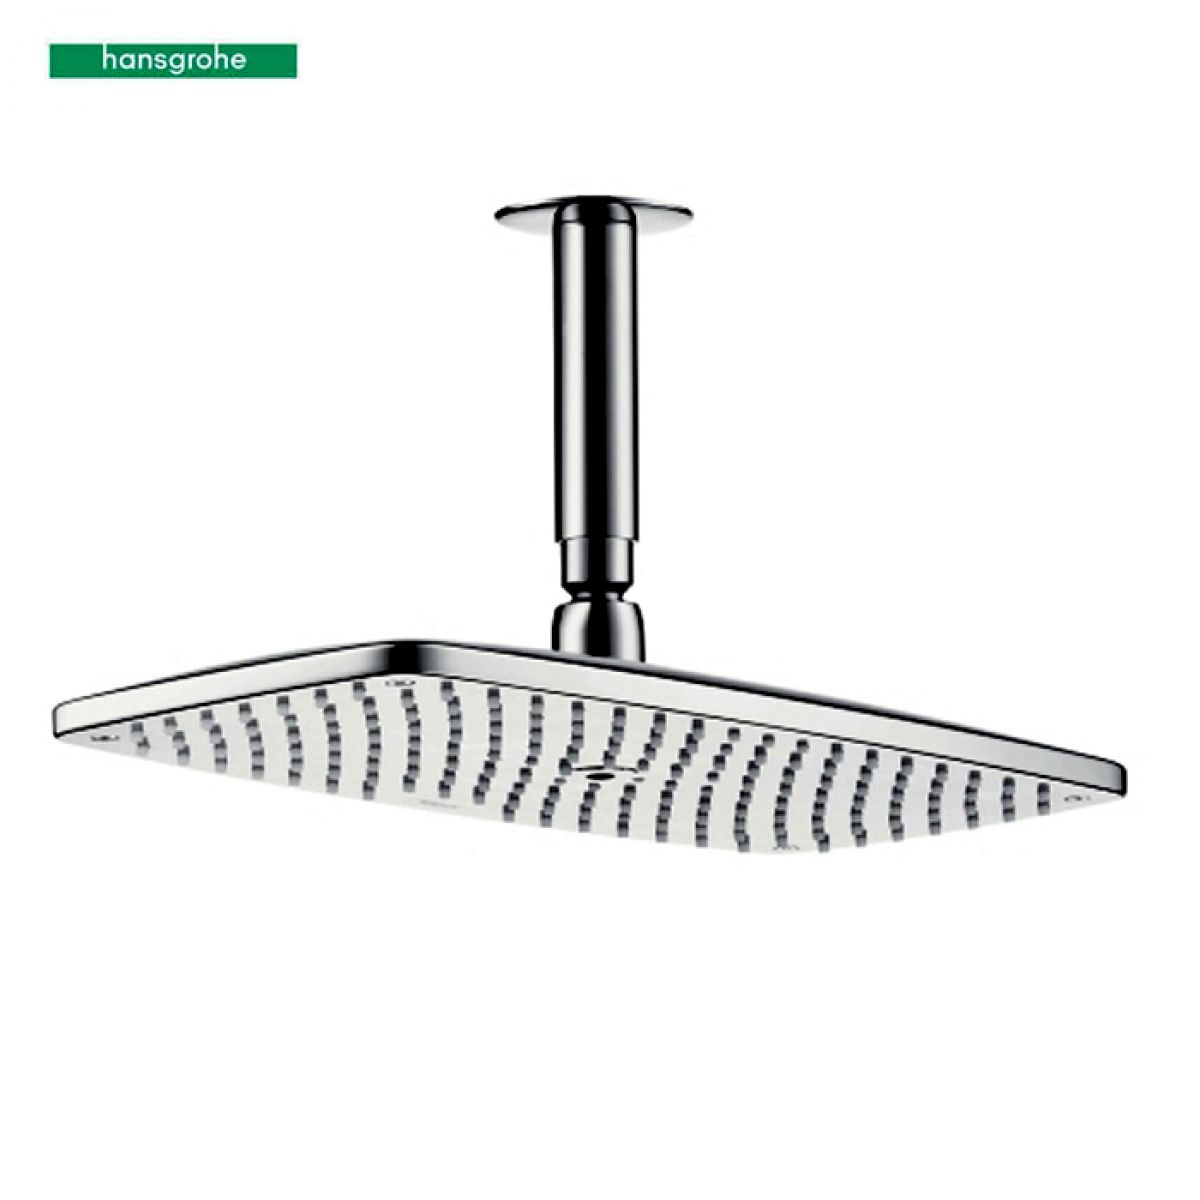 hansgrohe raindance e360 air 1jet overhead shower with. Black Bedroom Furniture Sets. Home Design Ideas